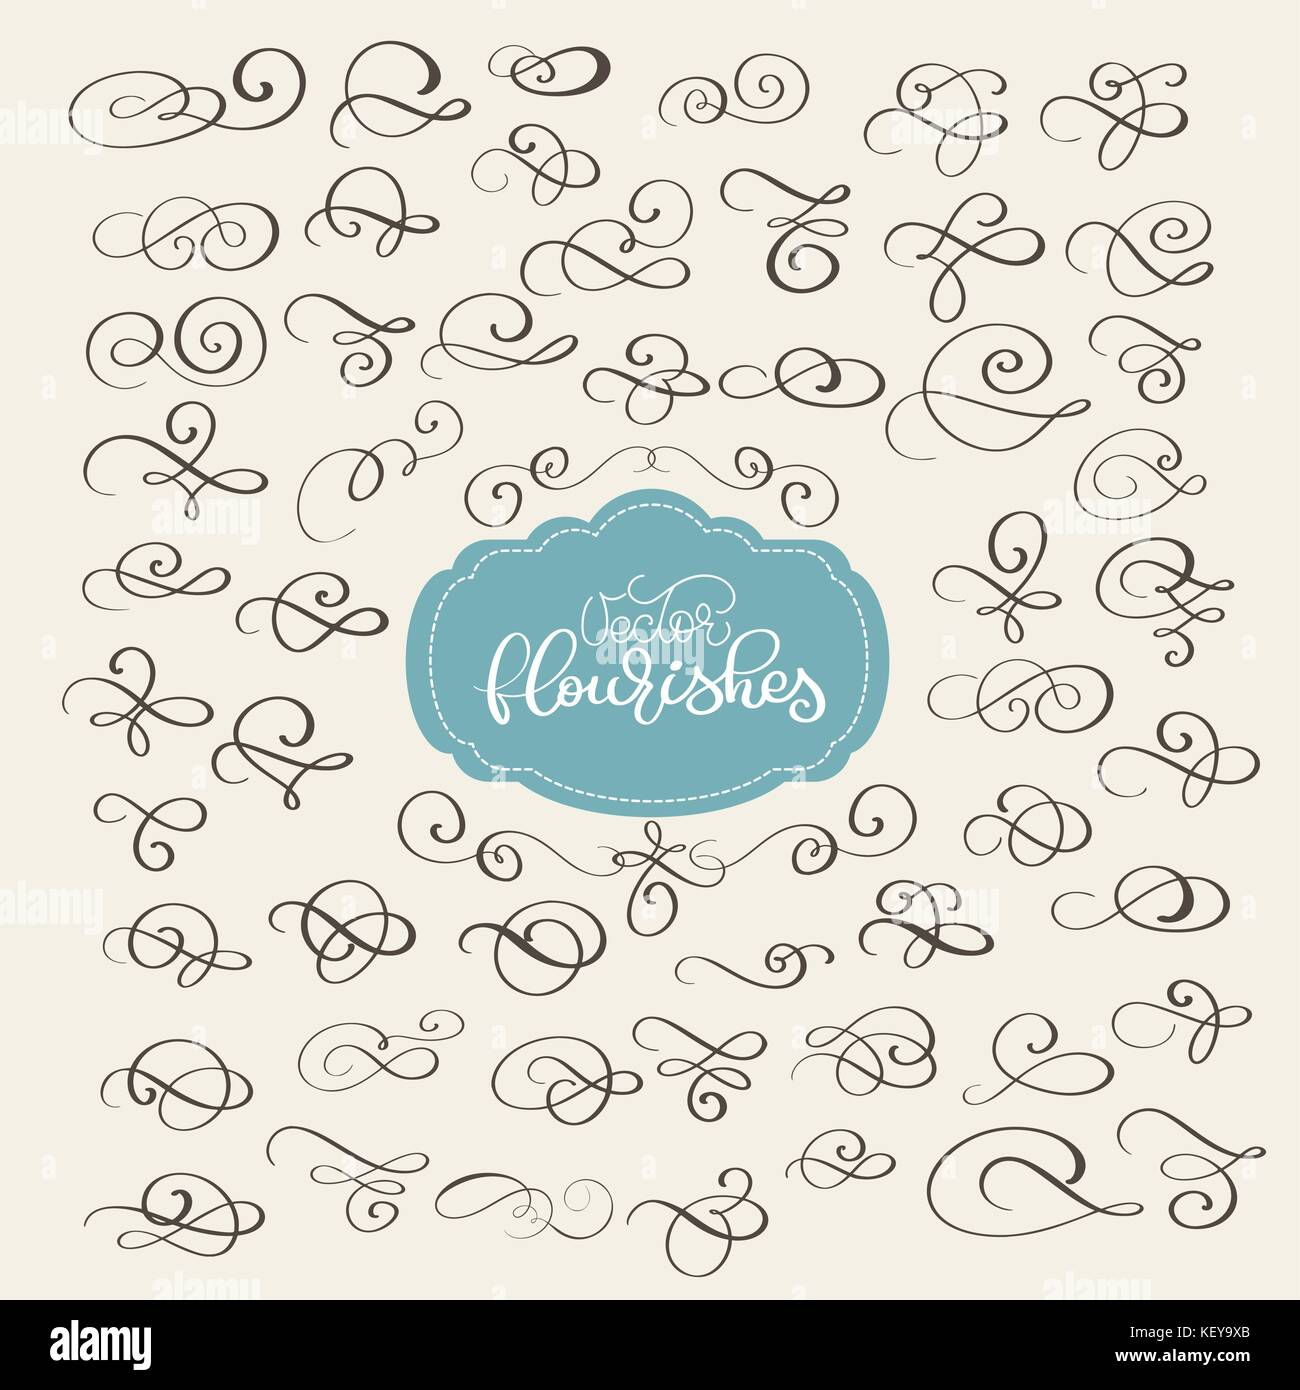 Set of flourish swirl ornate decoration for pointed pen ink stock quill pen flourishes for calligraphy graphic design postcard menu wedding invitation romantic style vector illustration stopboris Image collections